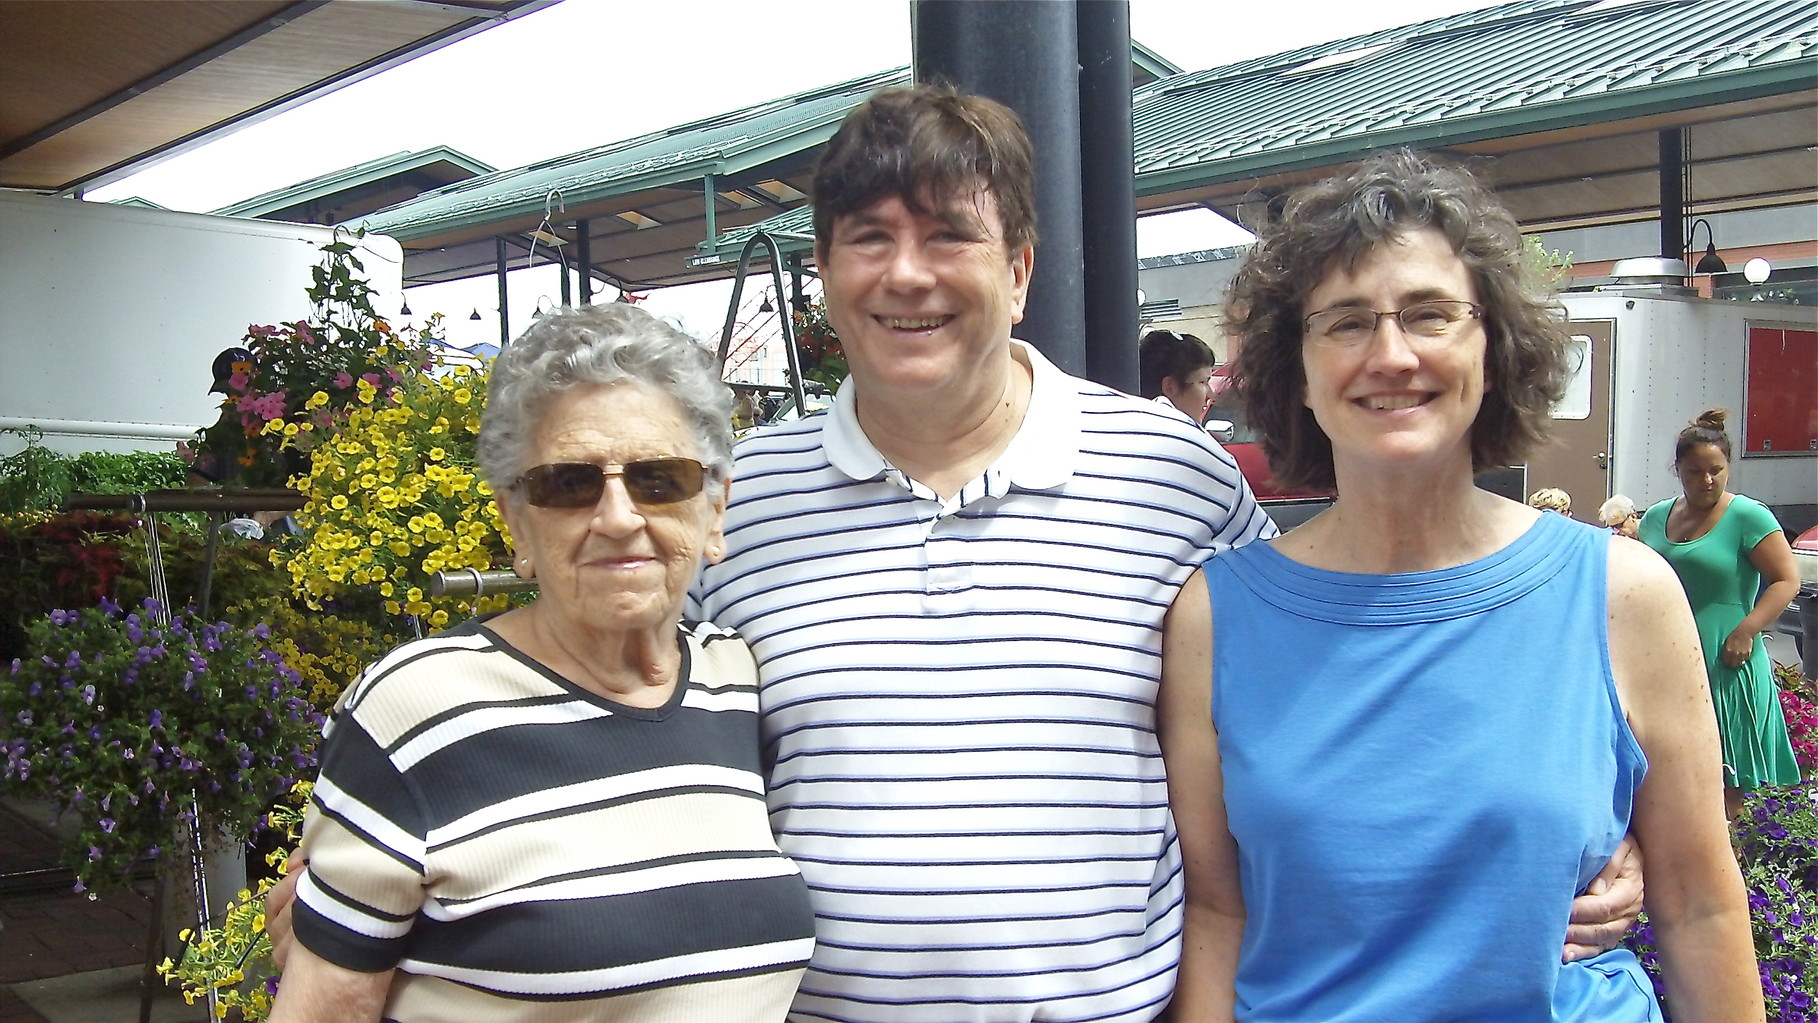 Mary Lou, John, & Ann at the Farmer's market